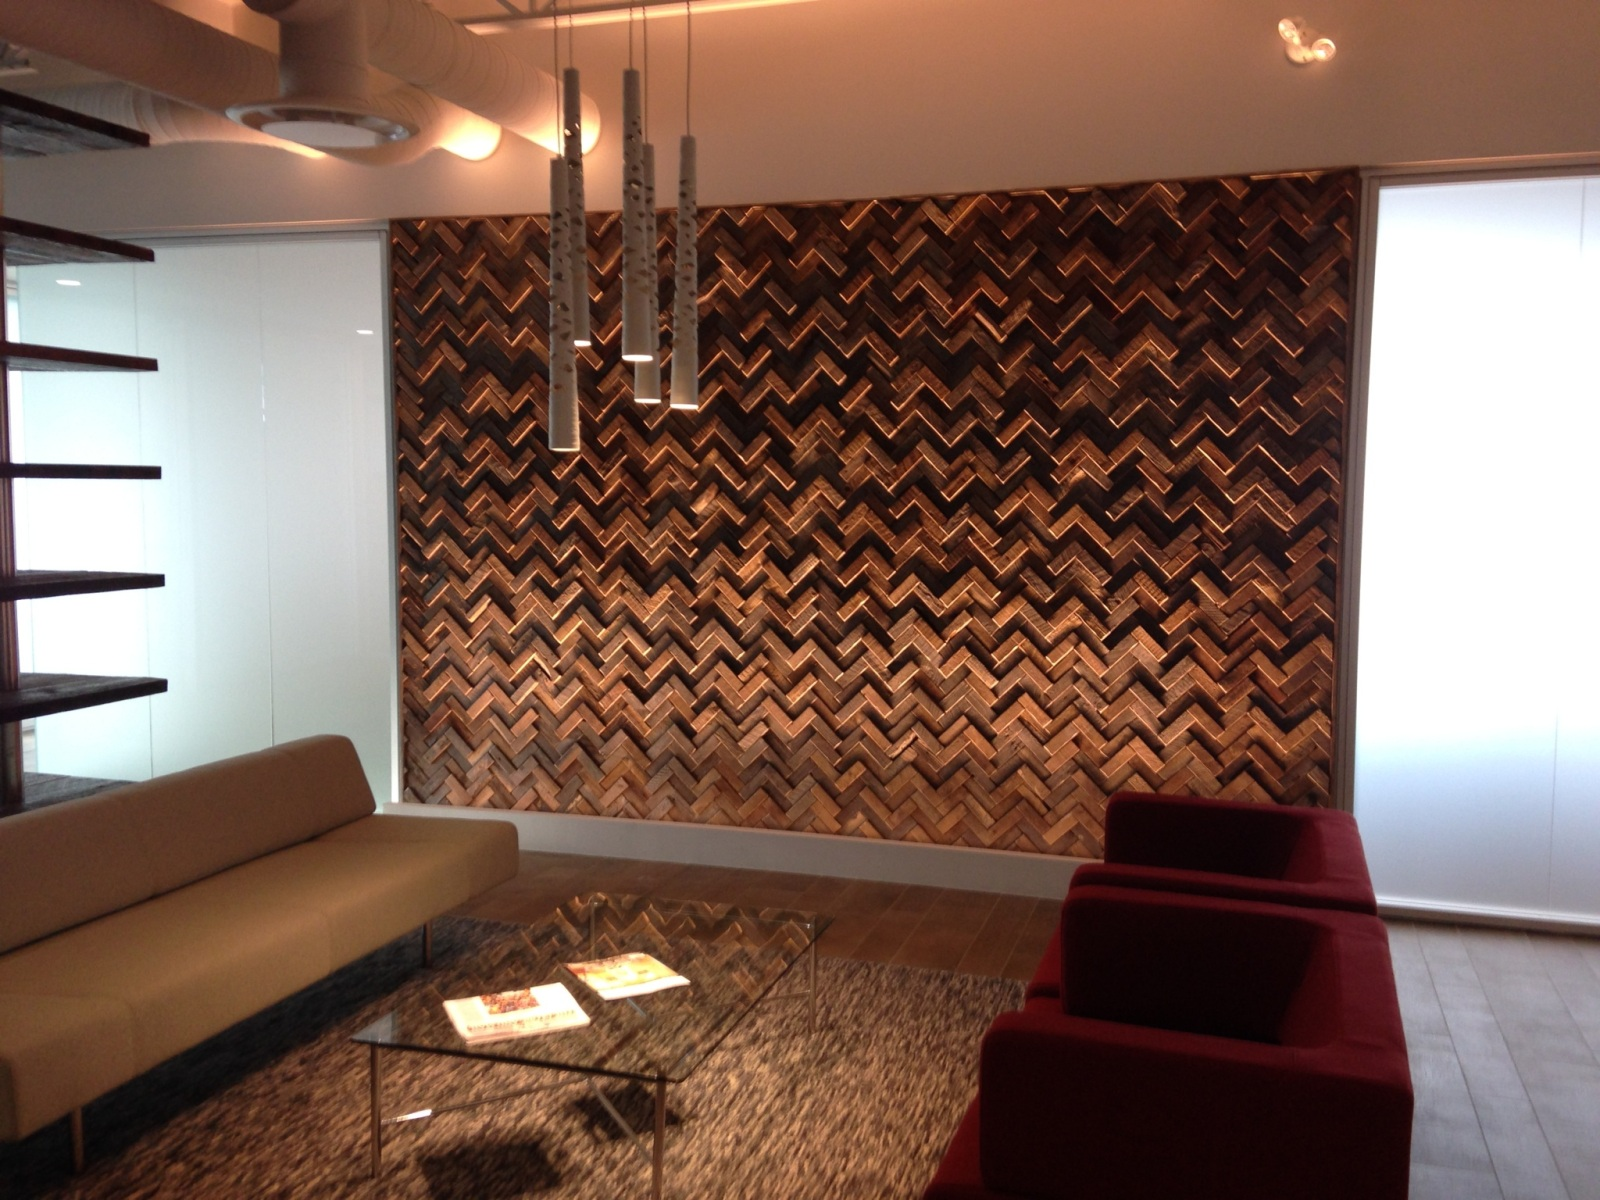 Unique Wood Wall Covering Ideas - HomesFeed on Creative Wall Design Ideas  id=35598